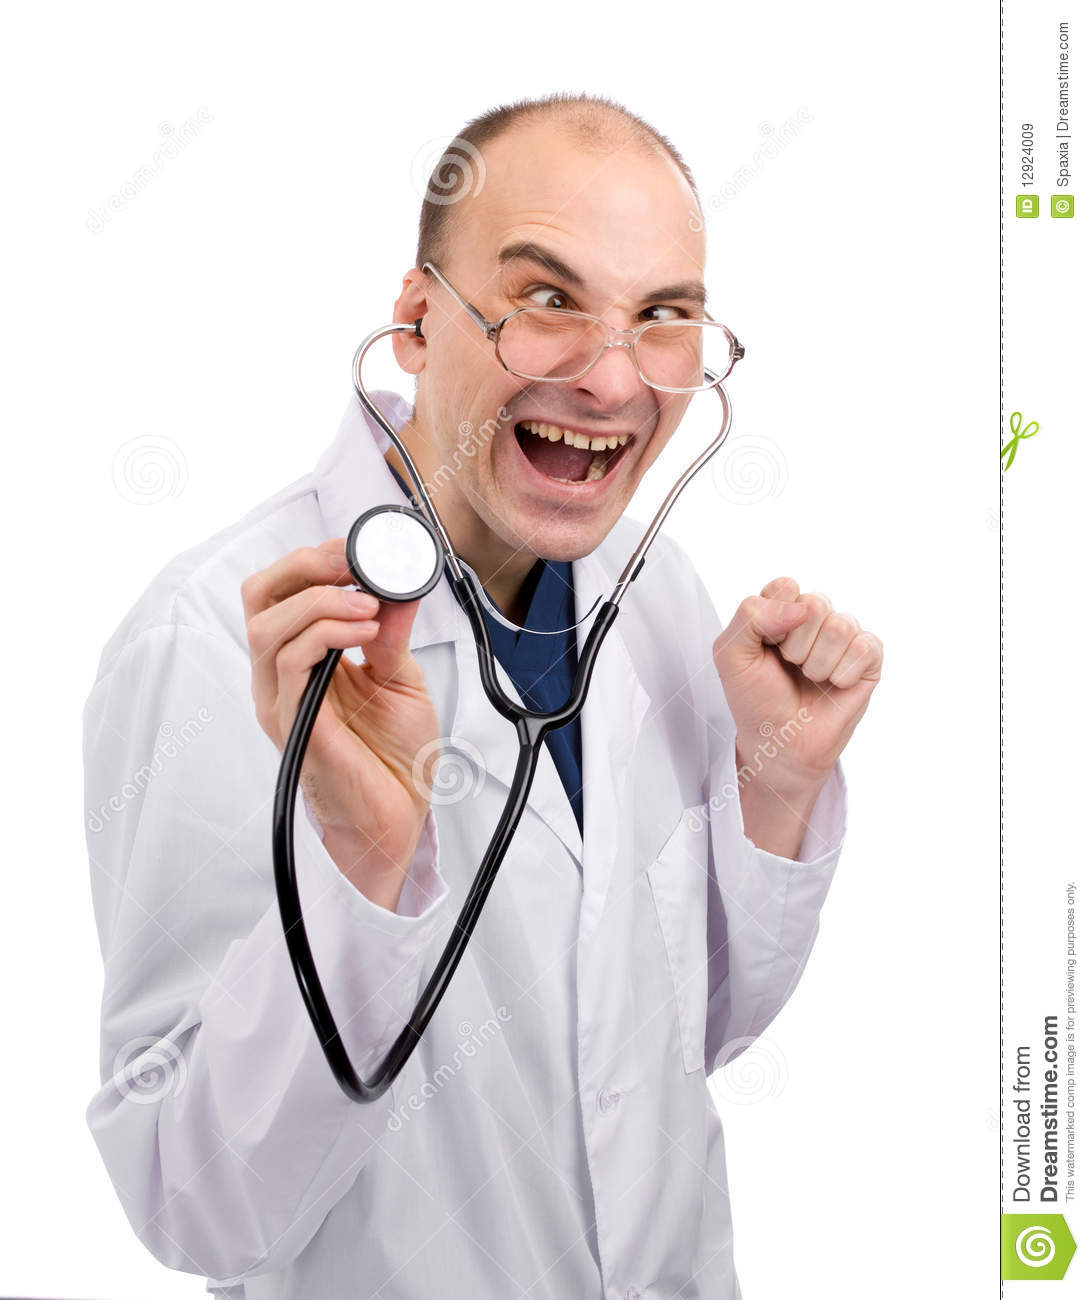 Crazy Doctor Royalty Free Stock Images - Image: 12924009